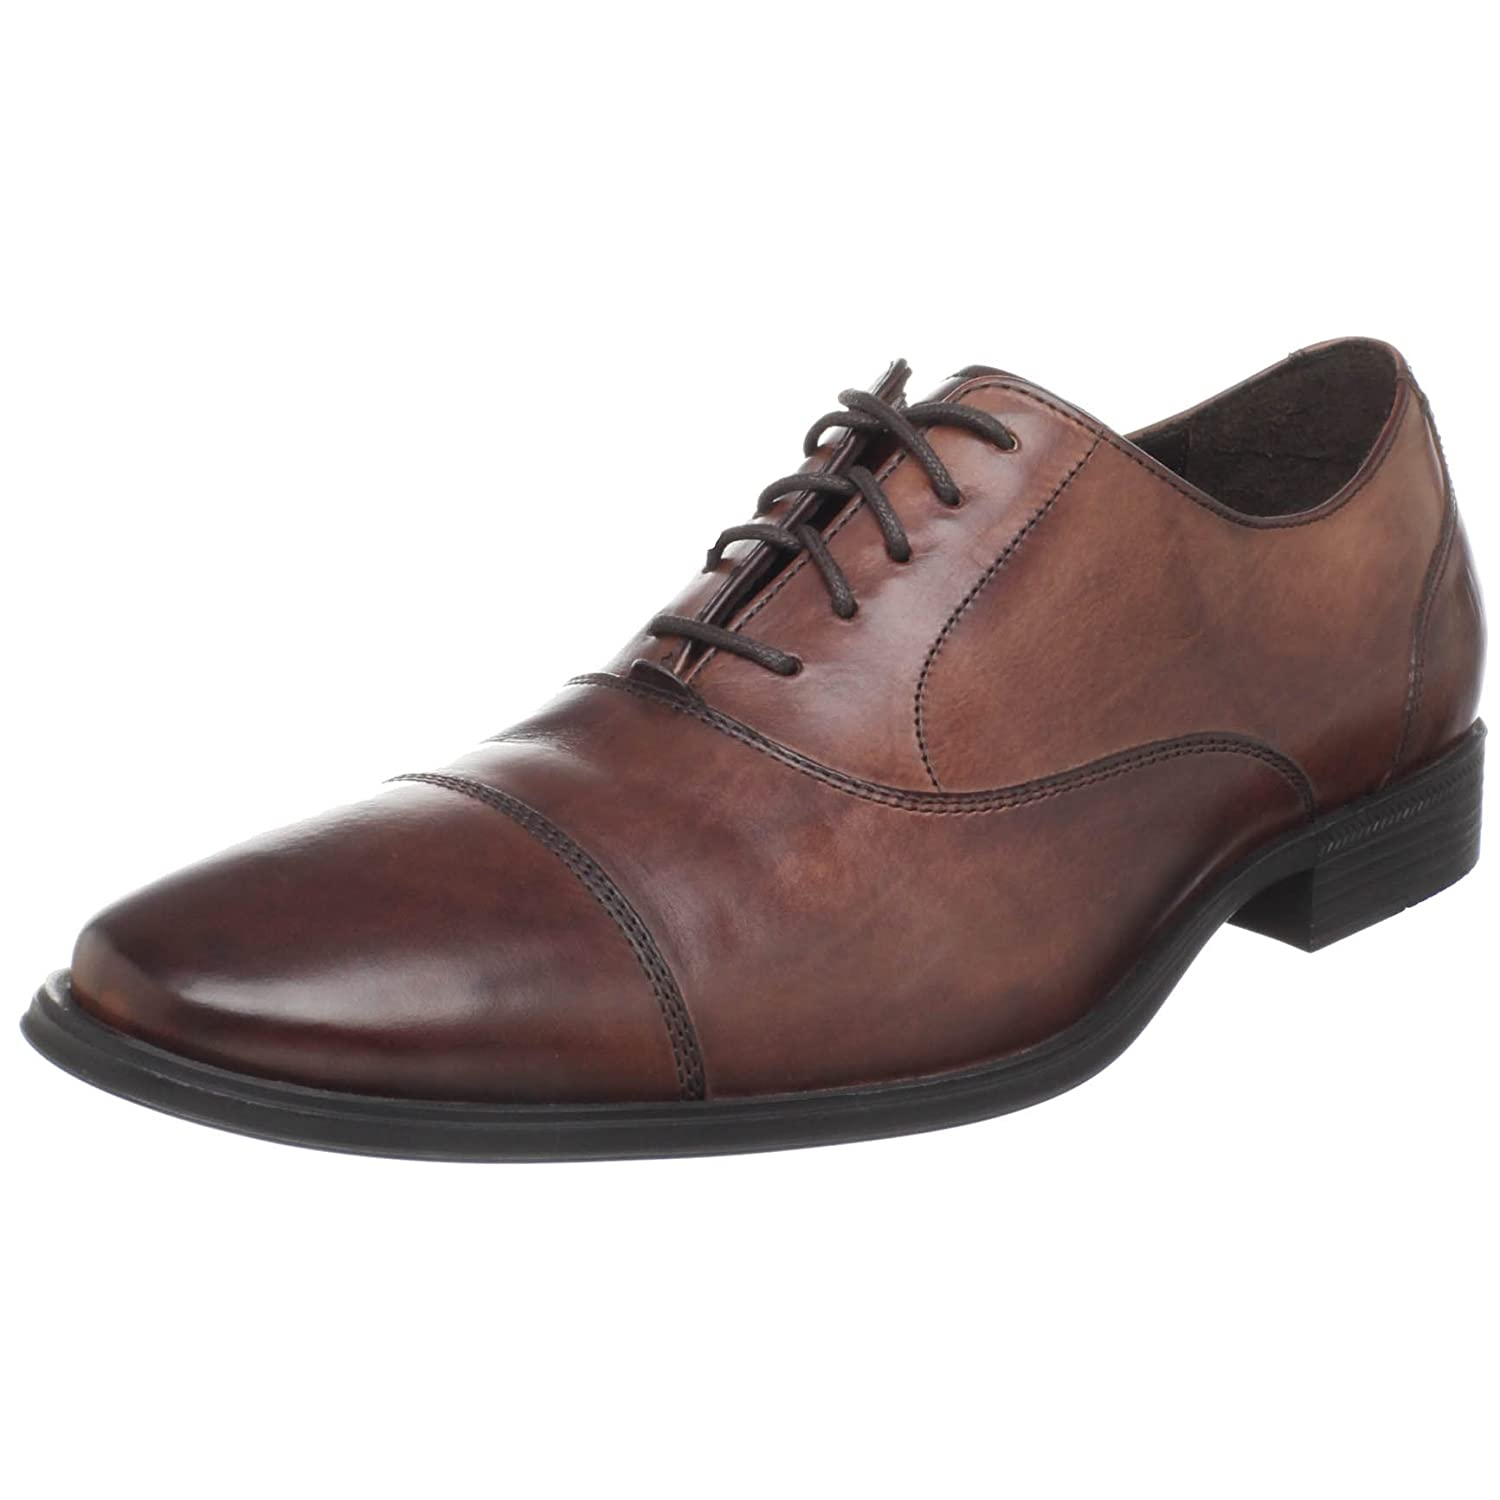 Brown Dress Shoes With Air Sole